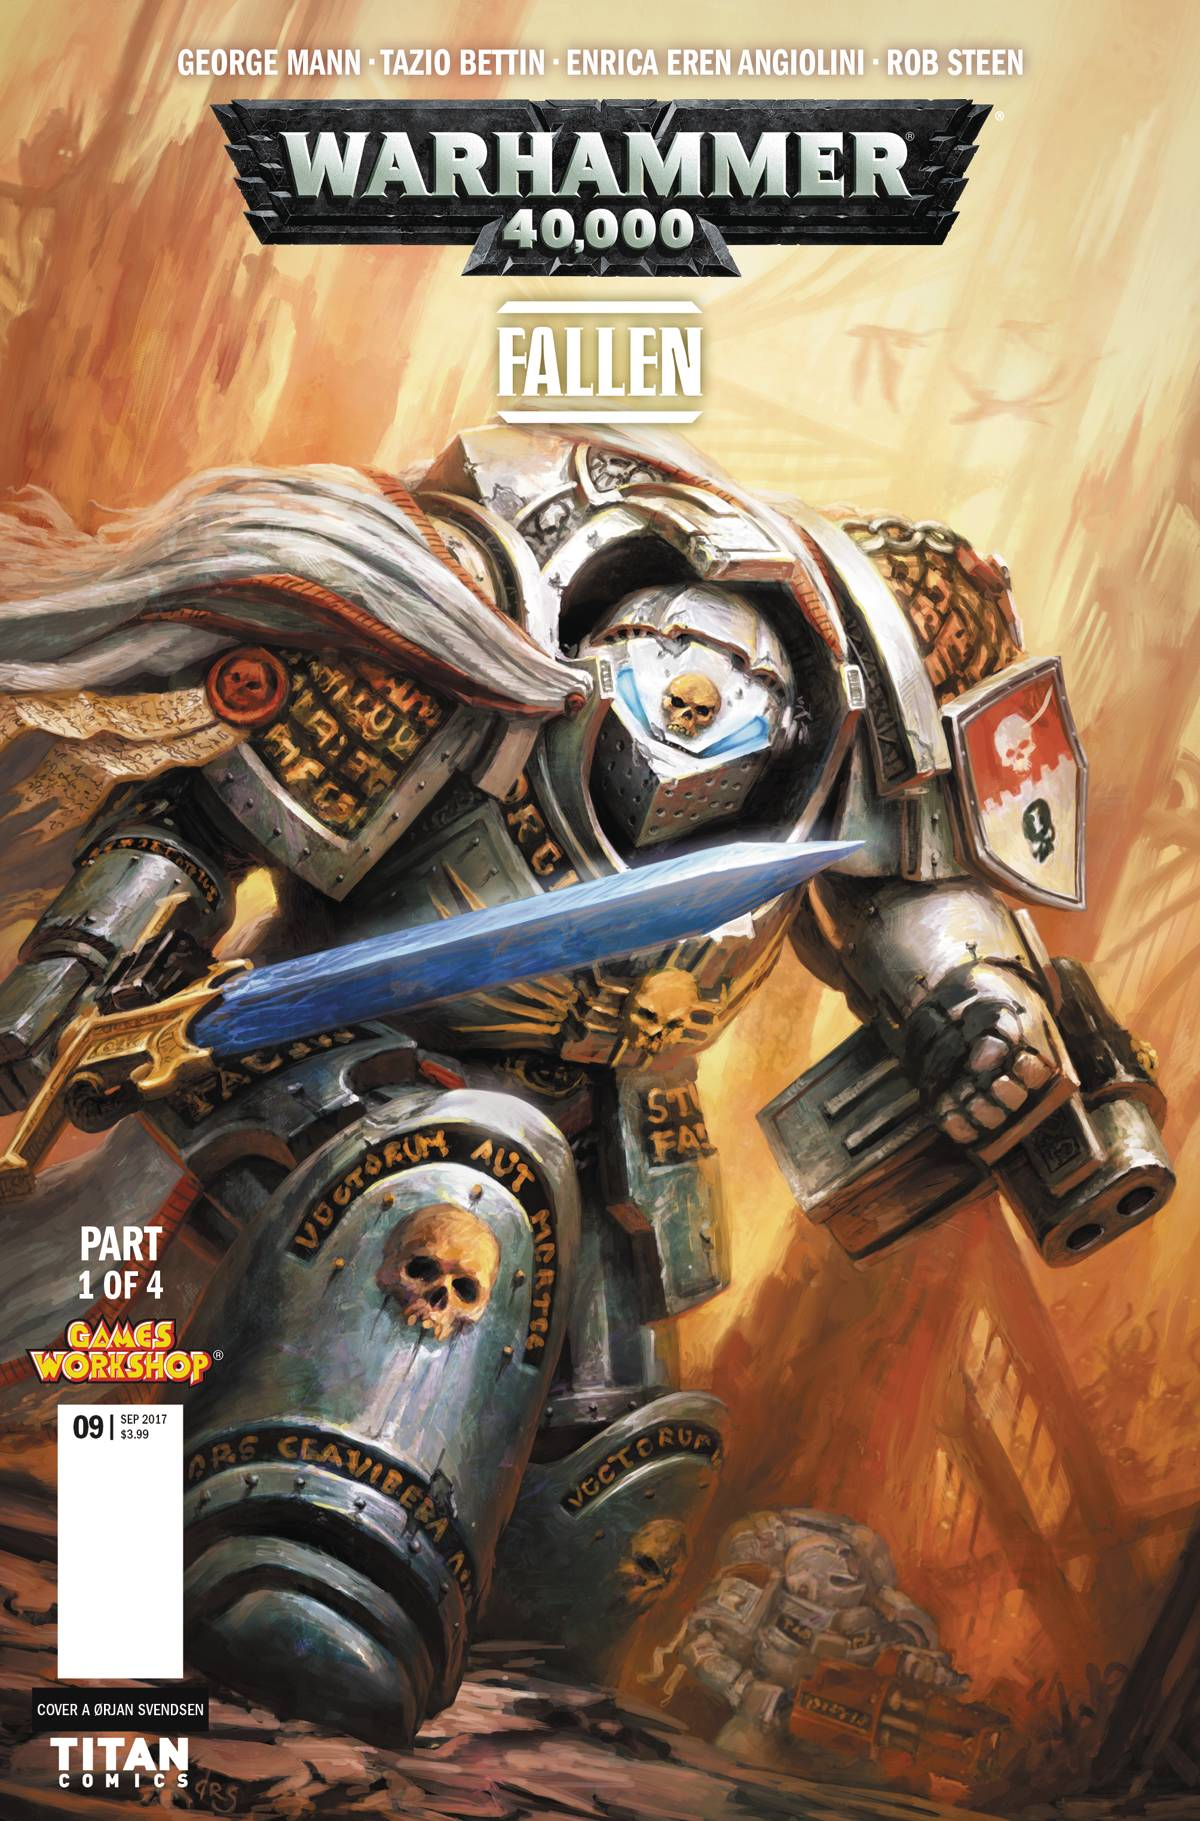 Warhammer 40k Fallen 1 Cover A Svendsen From Evoucer Mcdonald 40000 By George Mann Published Titan Comics Uk And